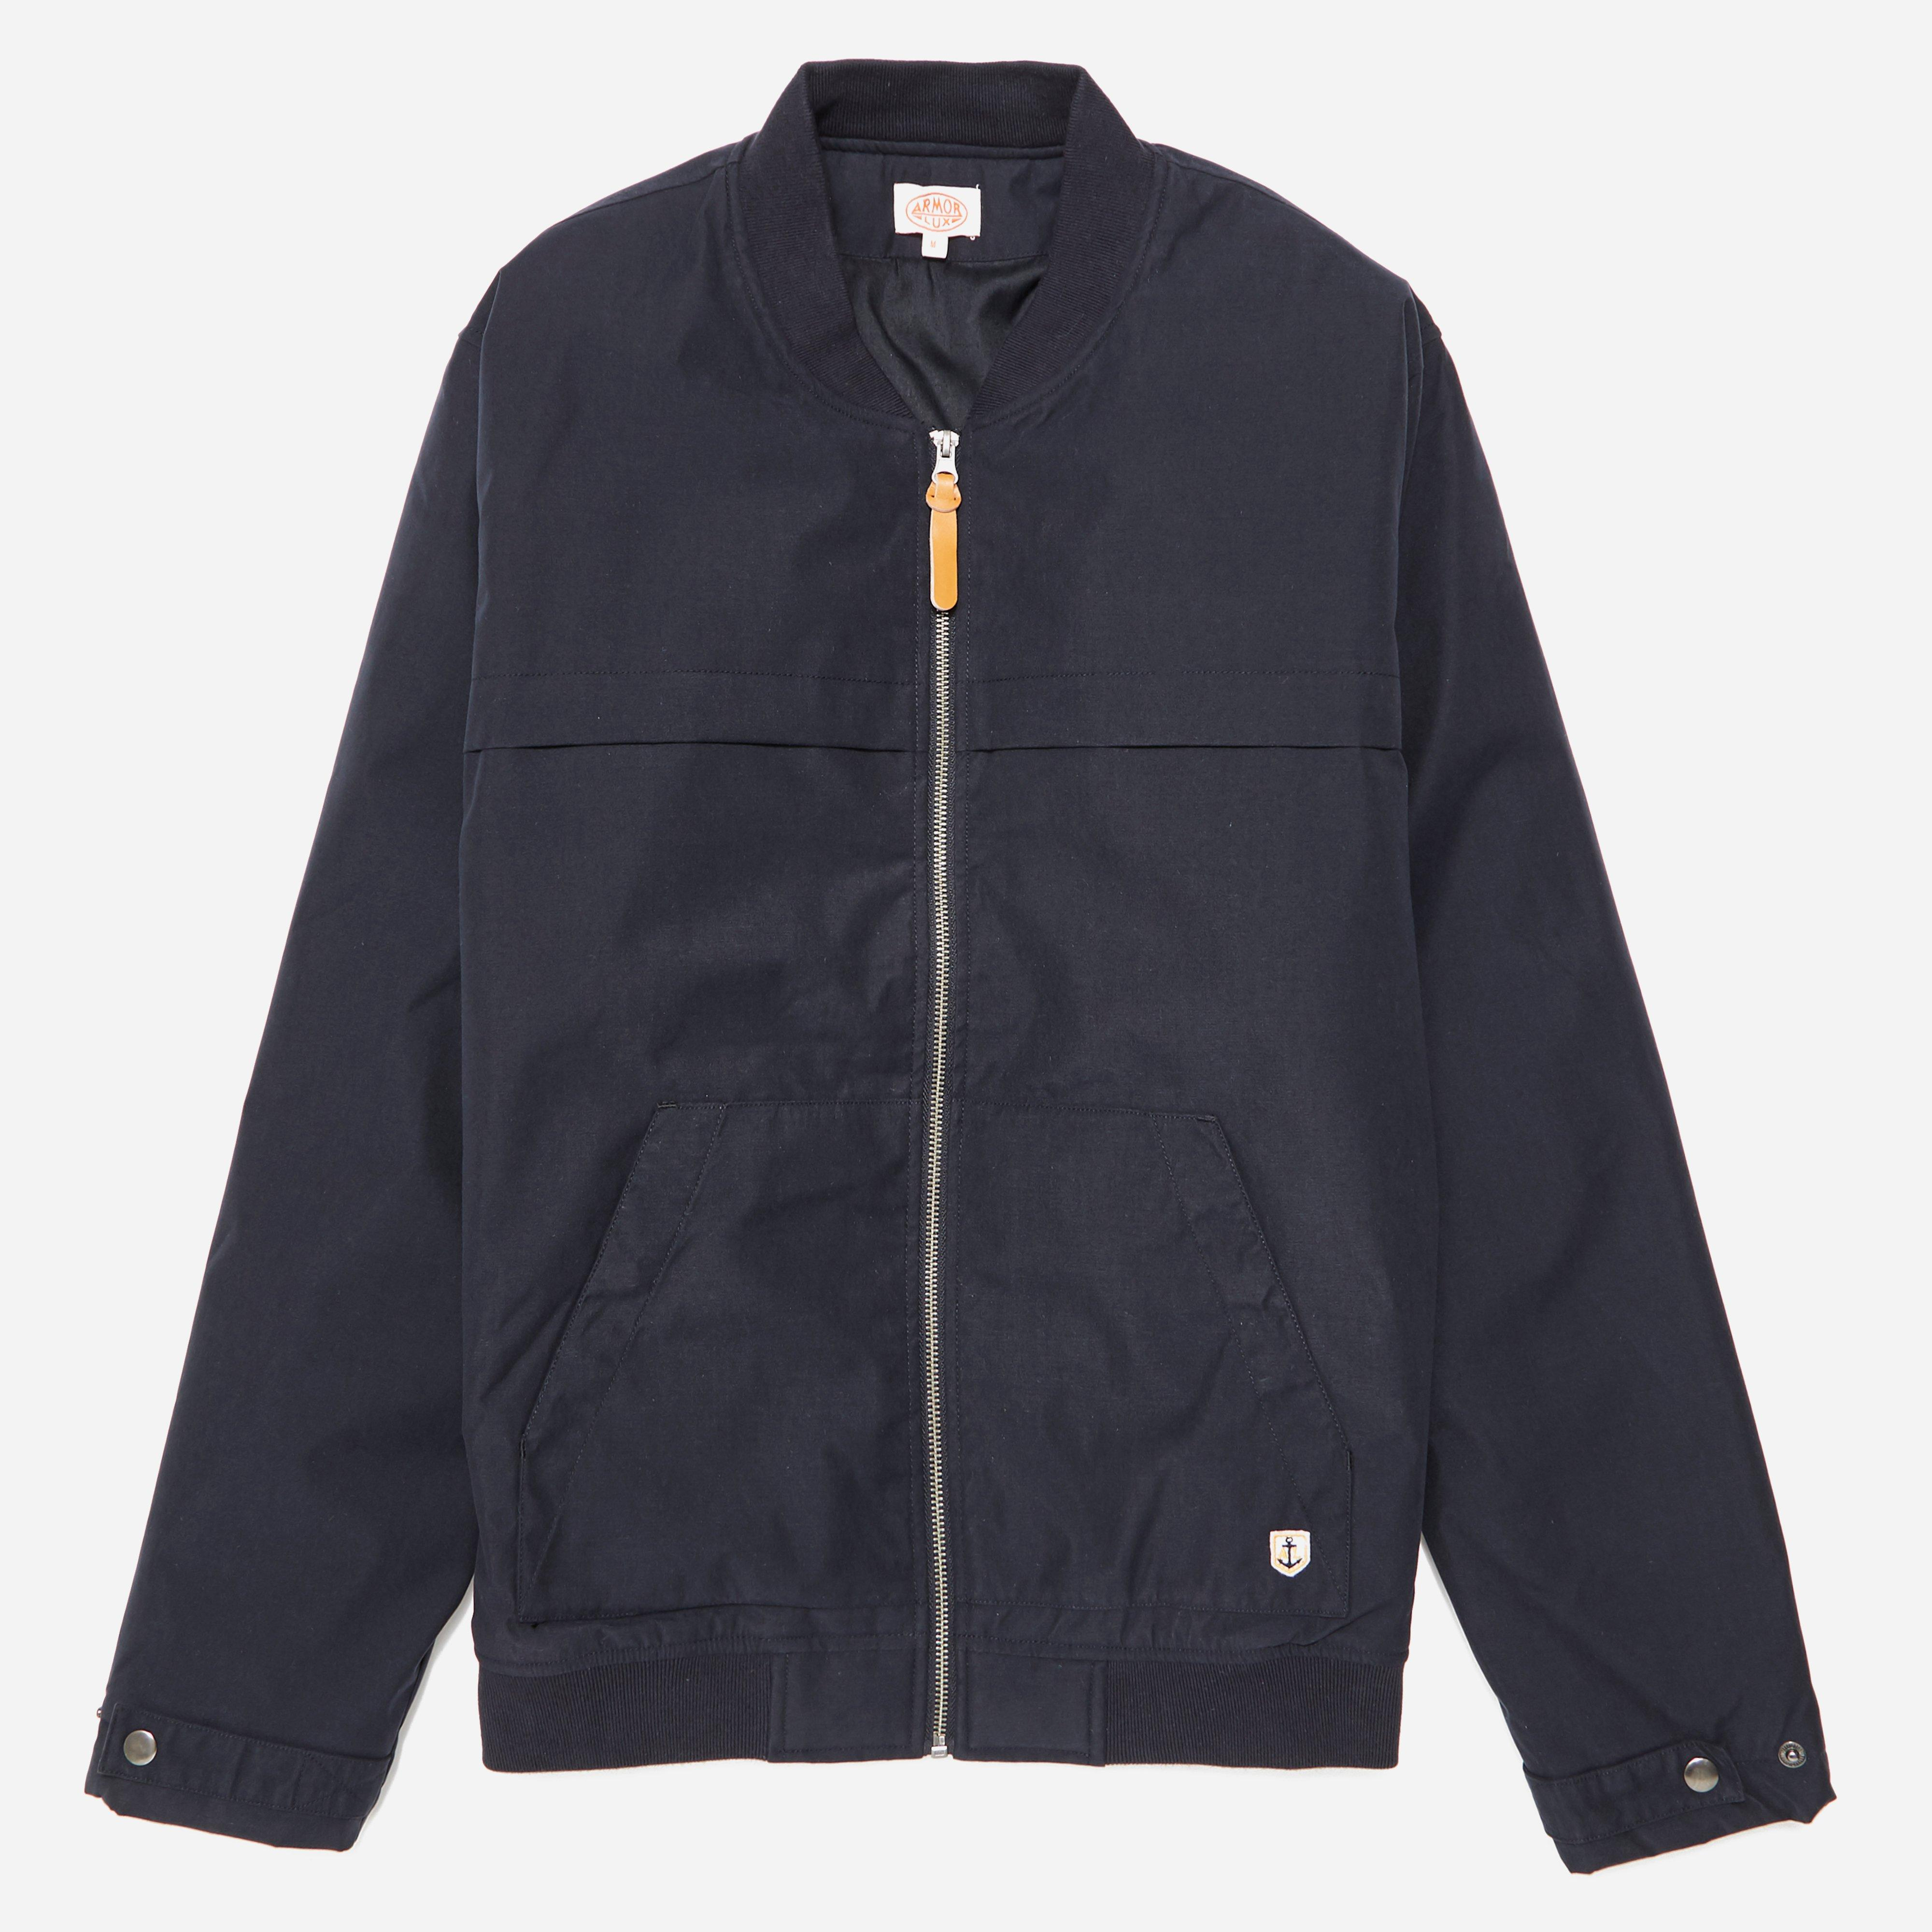 Armor Lux 75729 Bomber Jacket